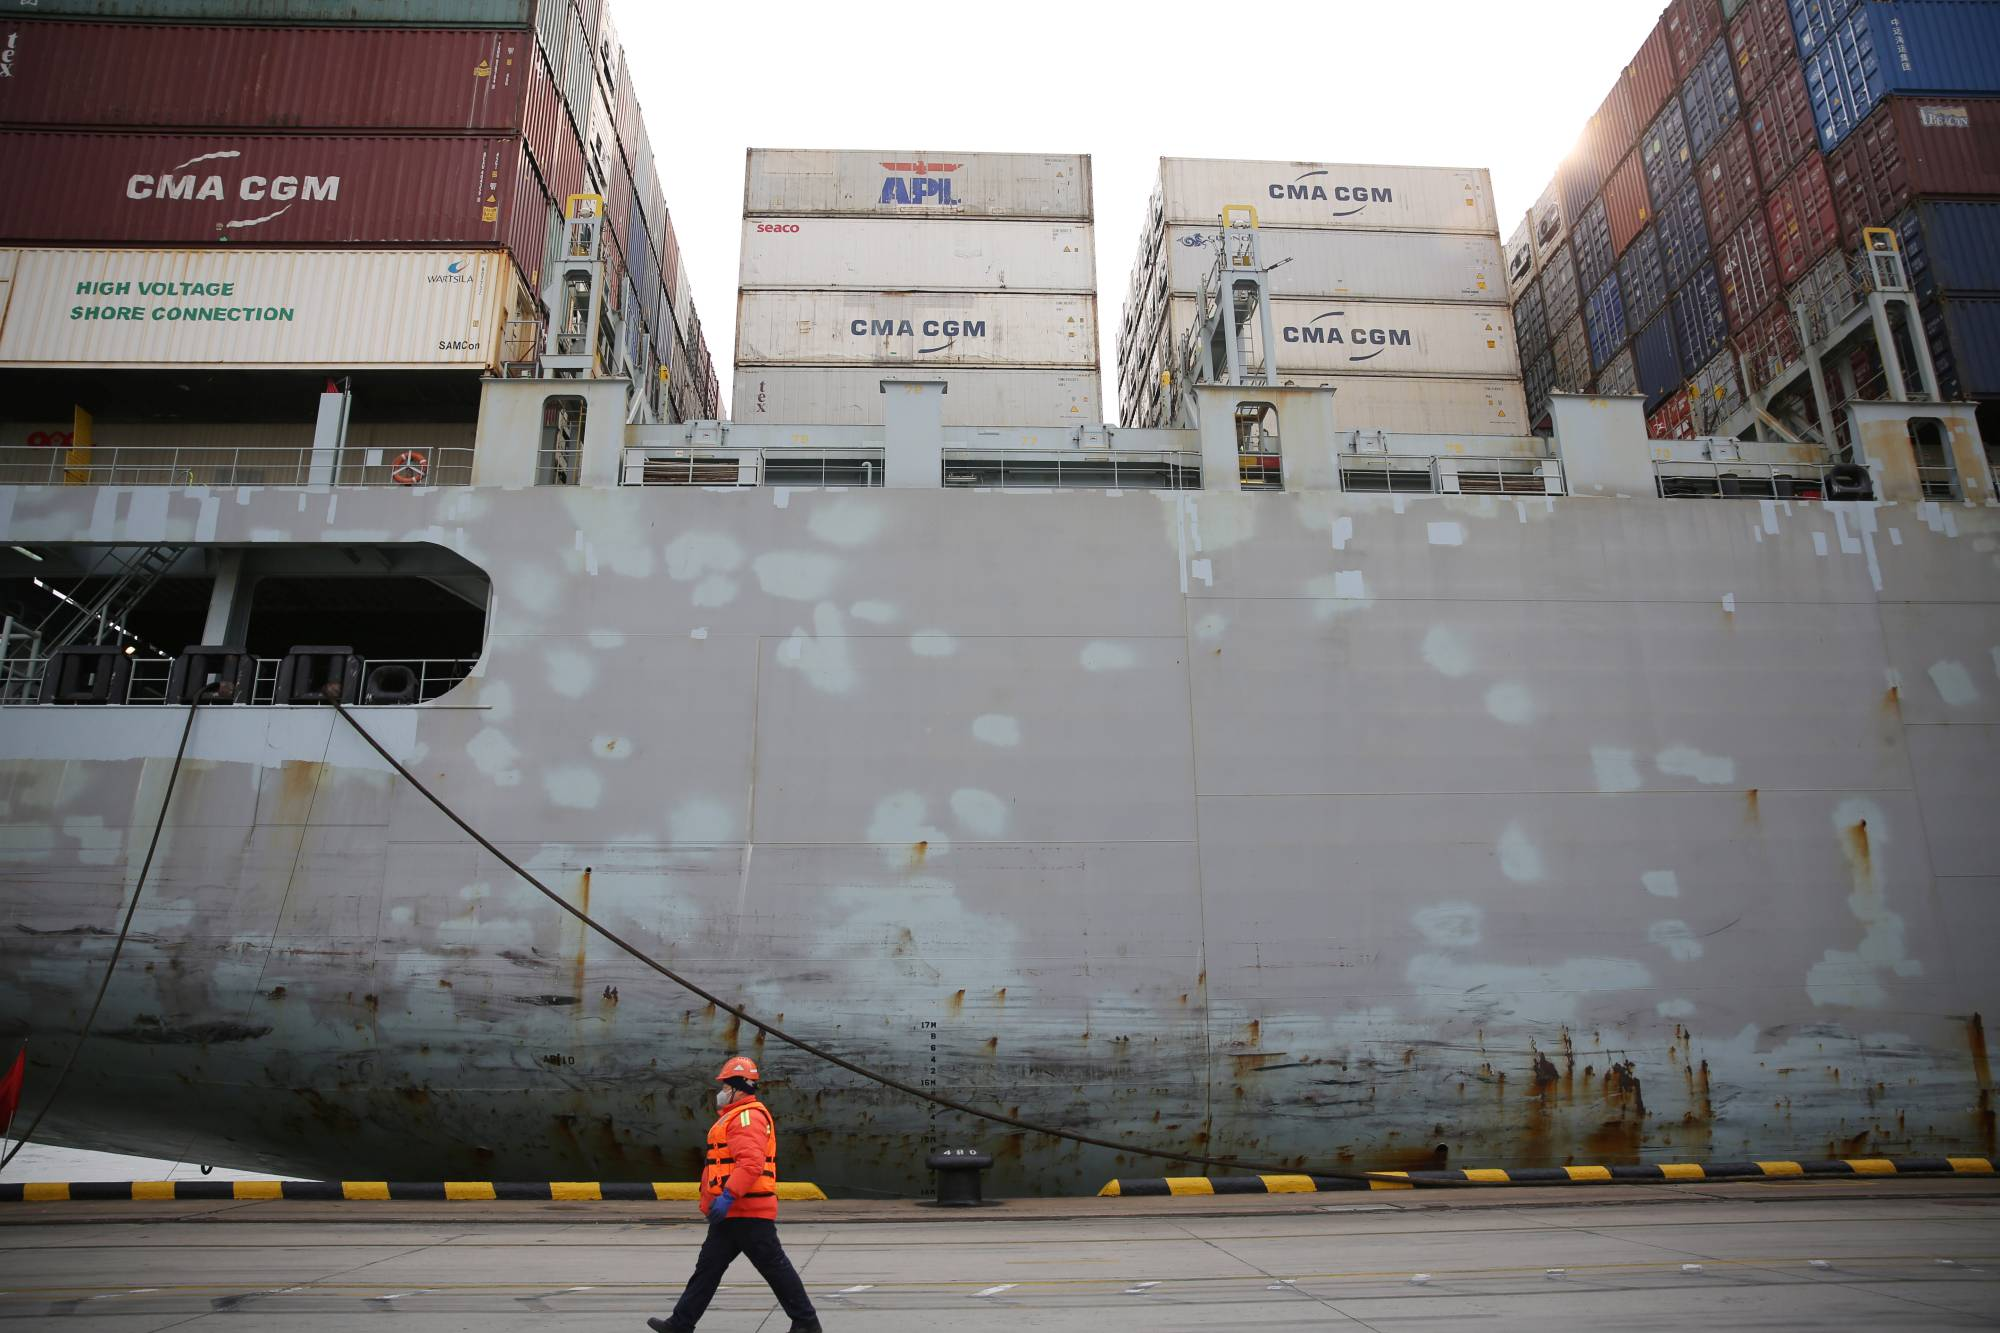 Refrigerated boxes are piling up at ports in China and exacerbating a global container crunch, as workers comply with strict COVID-19 testing procedures and disinfect meat and seafood products after frozen-food imports were blamed for the spread of the novel coronavirus. | CNSPHOTO / VIA REUTERS